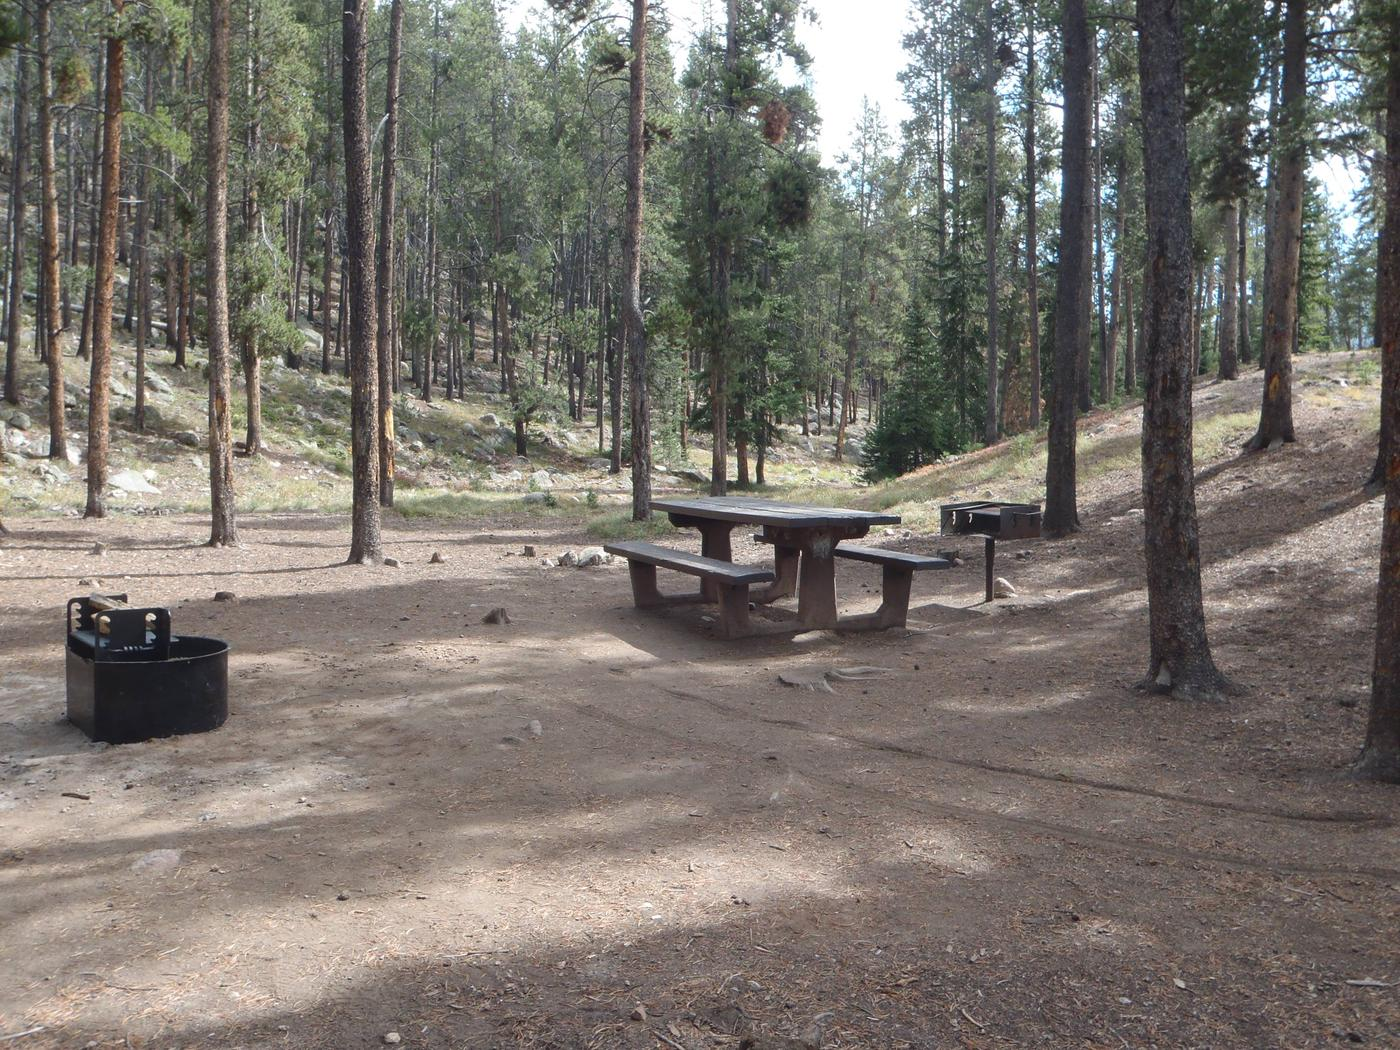 May Queen Campground, site 14 picnic table and fire ring